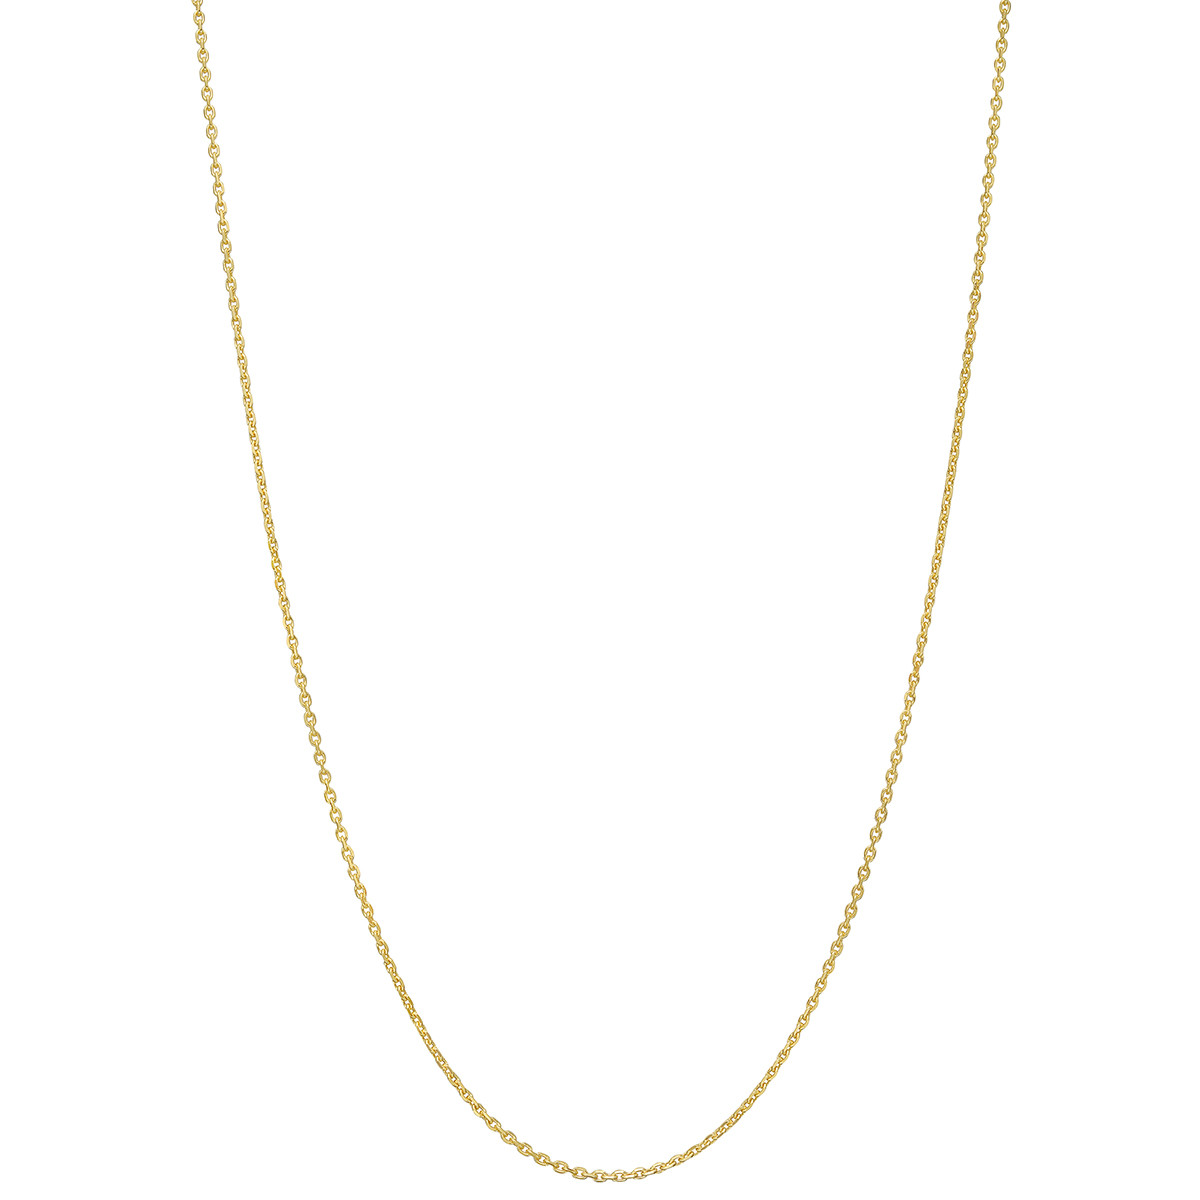 "18k Yellow Gold Thin Diamond-Cut Link Chain Necklace (24"")"